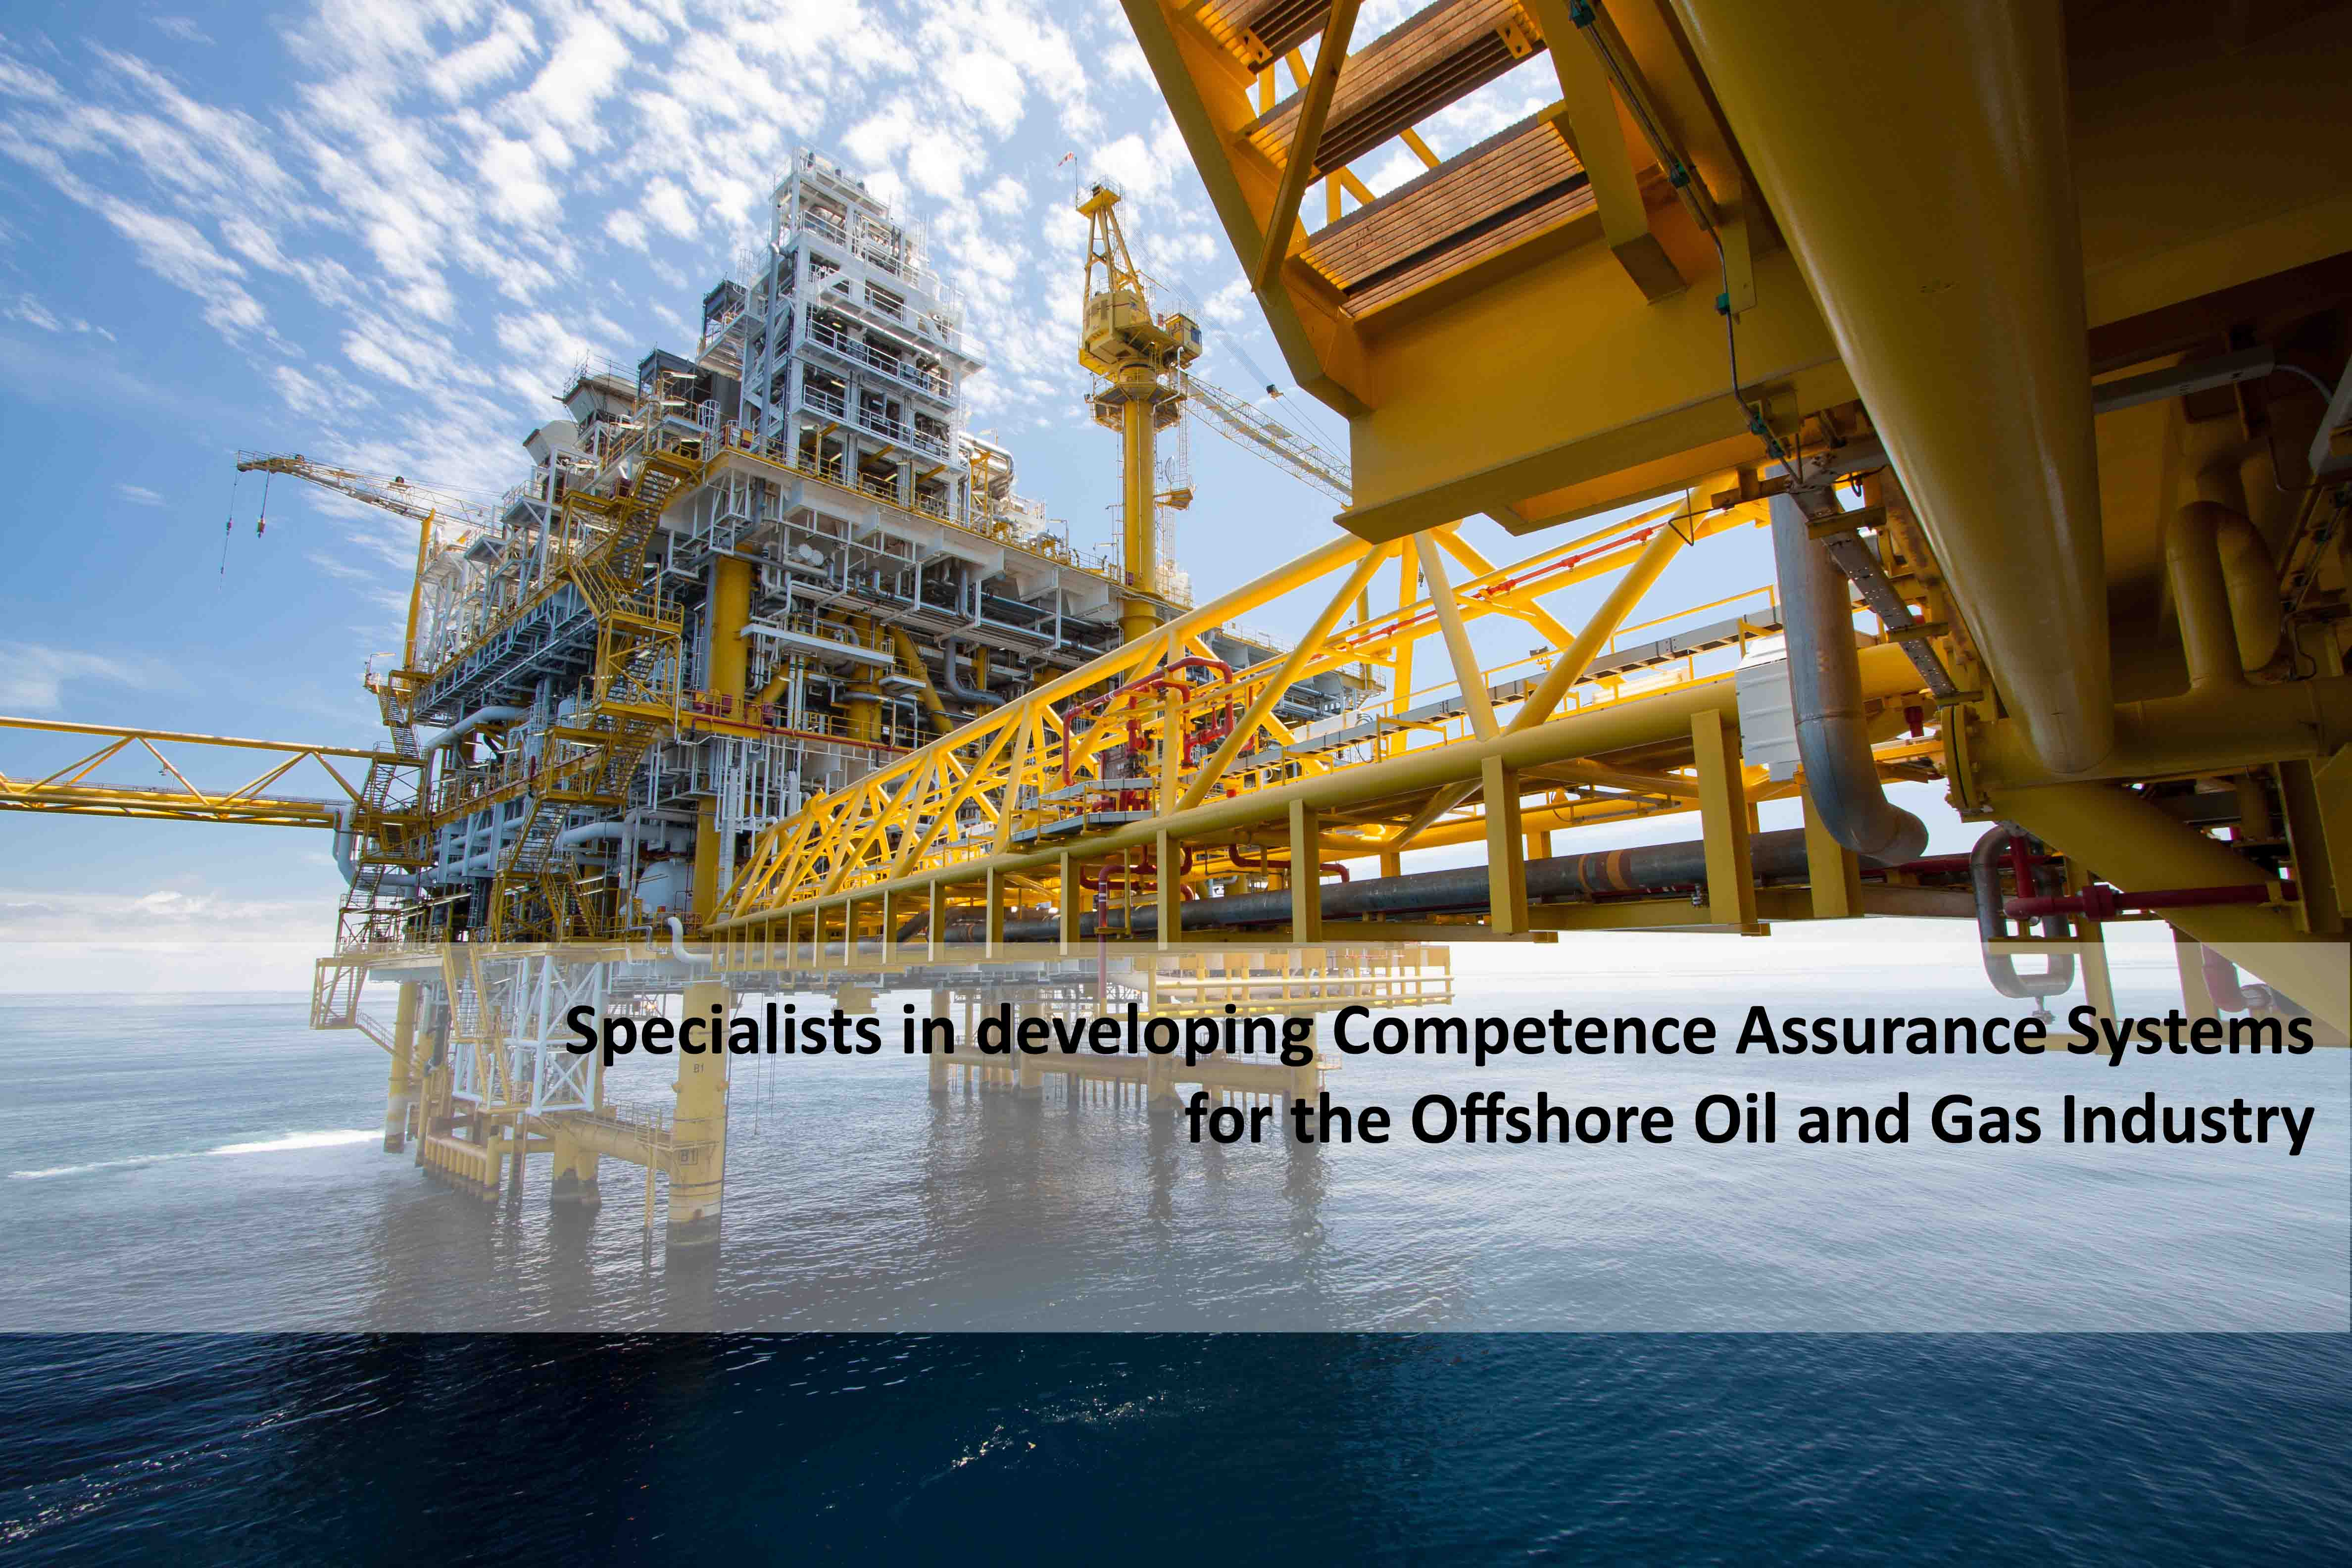 IDESS IT are specialists in developing Competence Assurance Systems for the offshore oil and gas industry